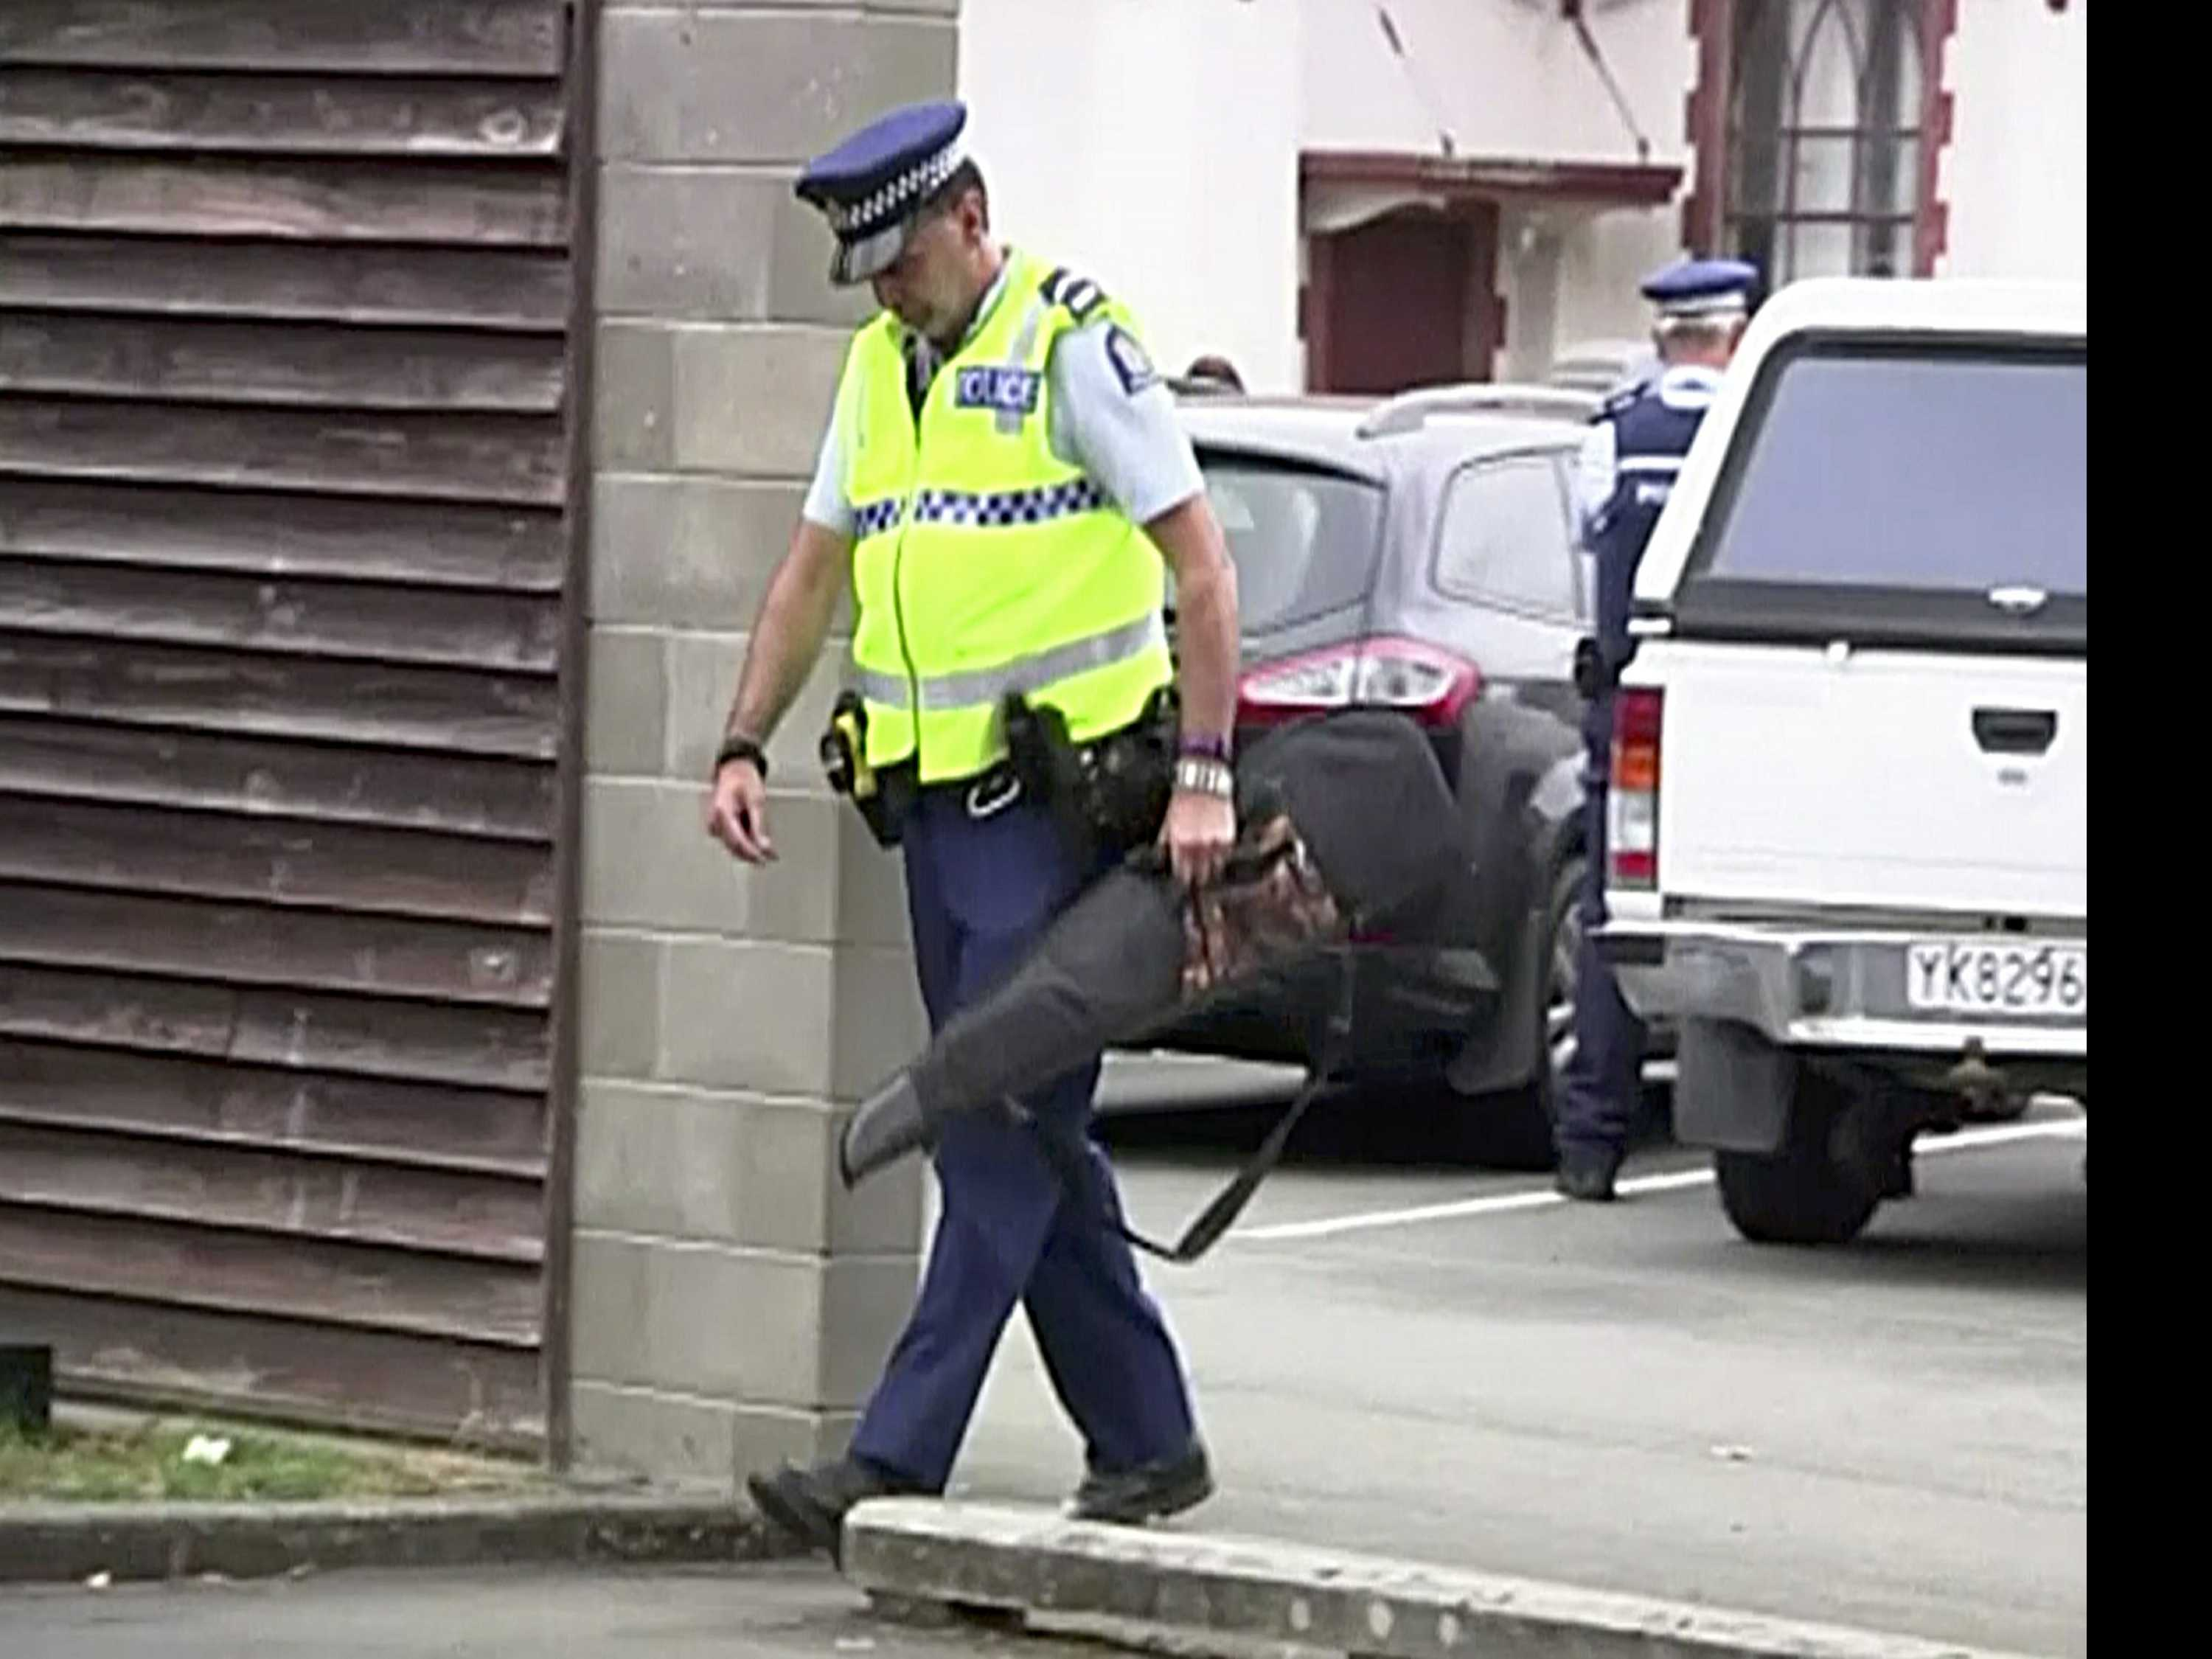 After Mosque Attacks, New Zealand Banning 'Military-Style' Guns